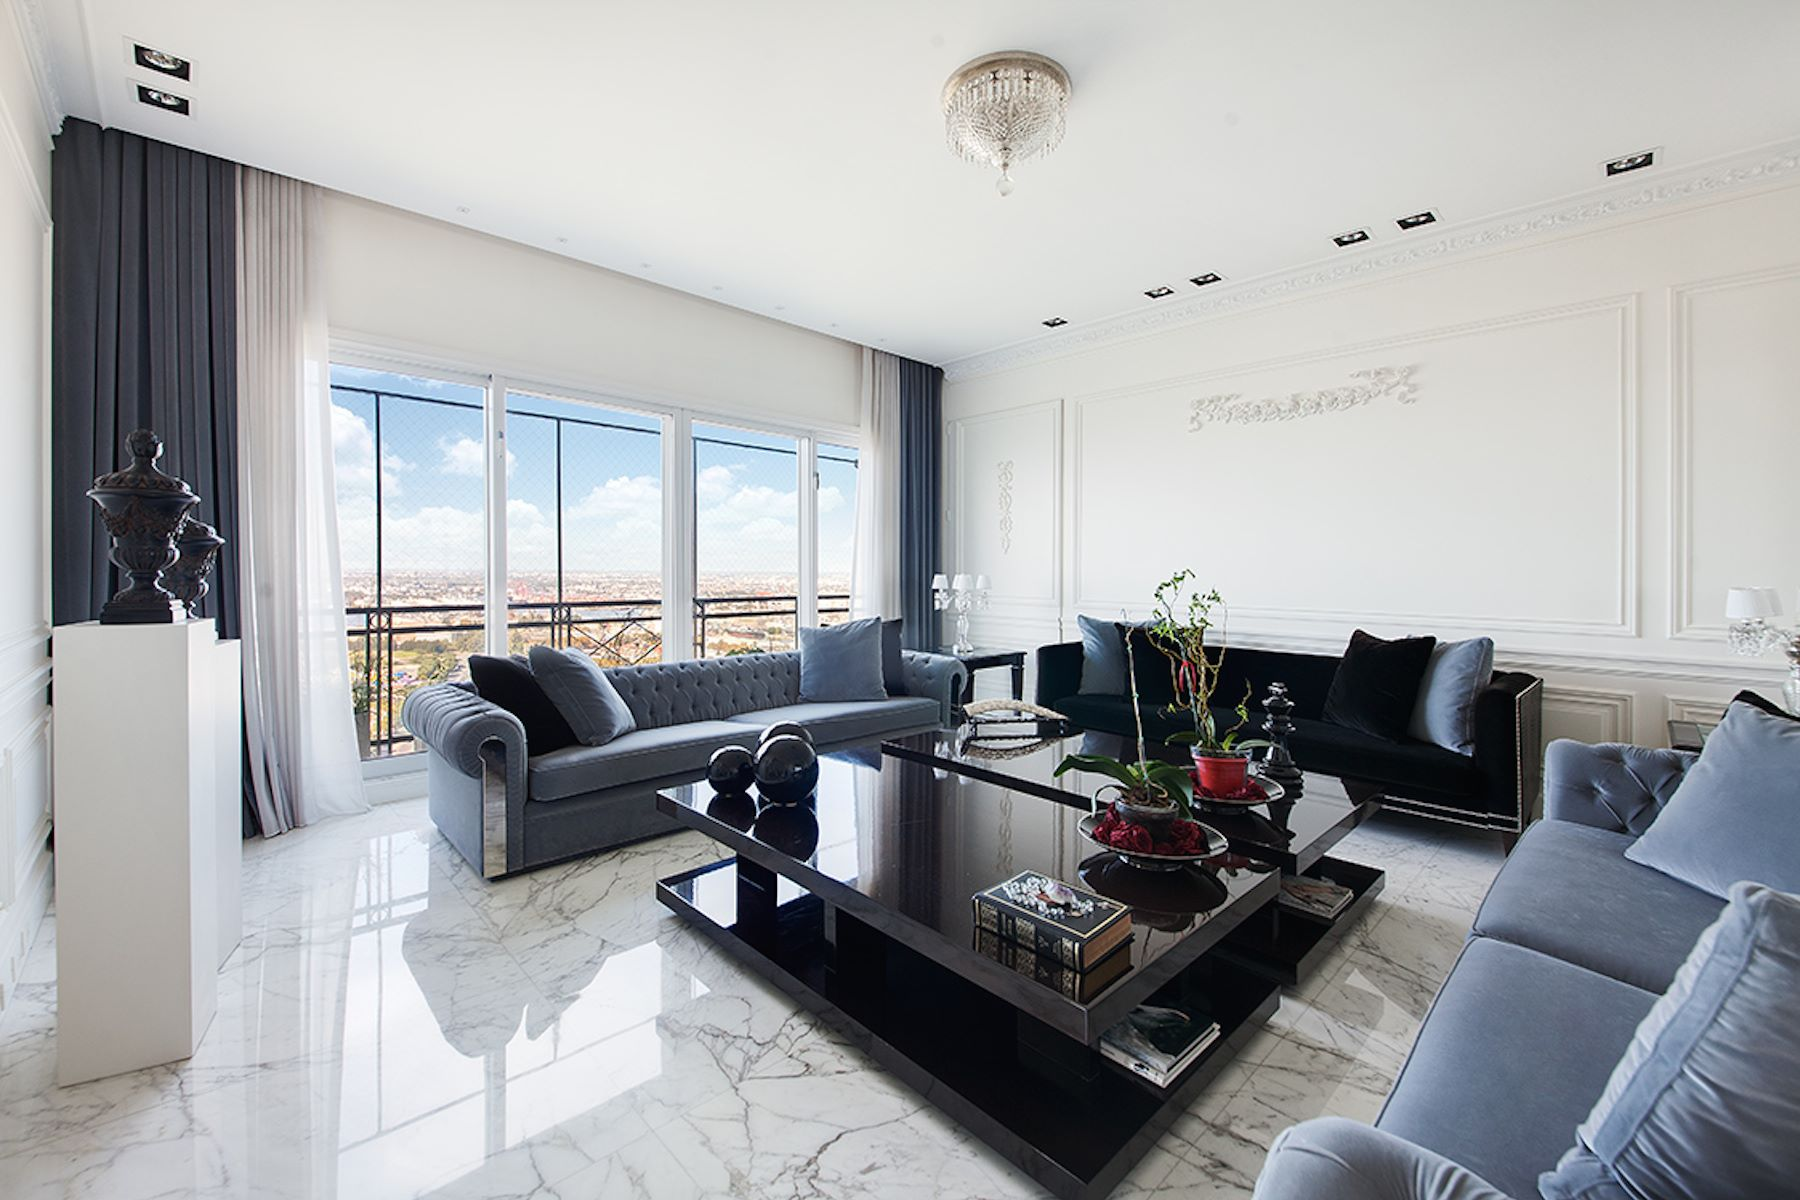 Apartment for Sale at Refined Residence in Chateau Building - Puerto Madero Puerto Madero, Buenos Aires, Buenos Aires Argentina